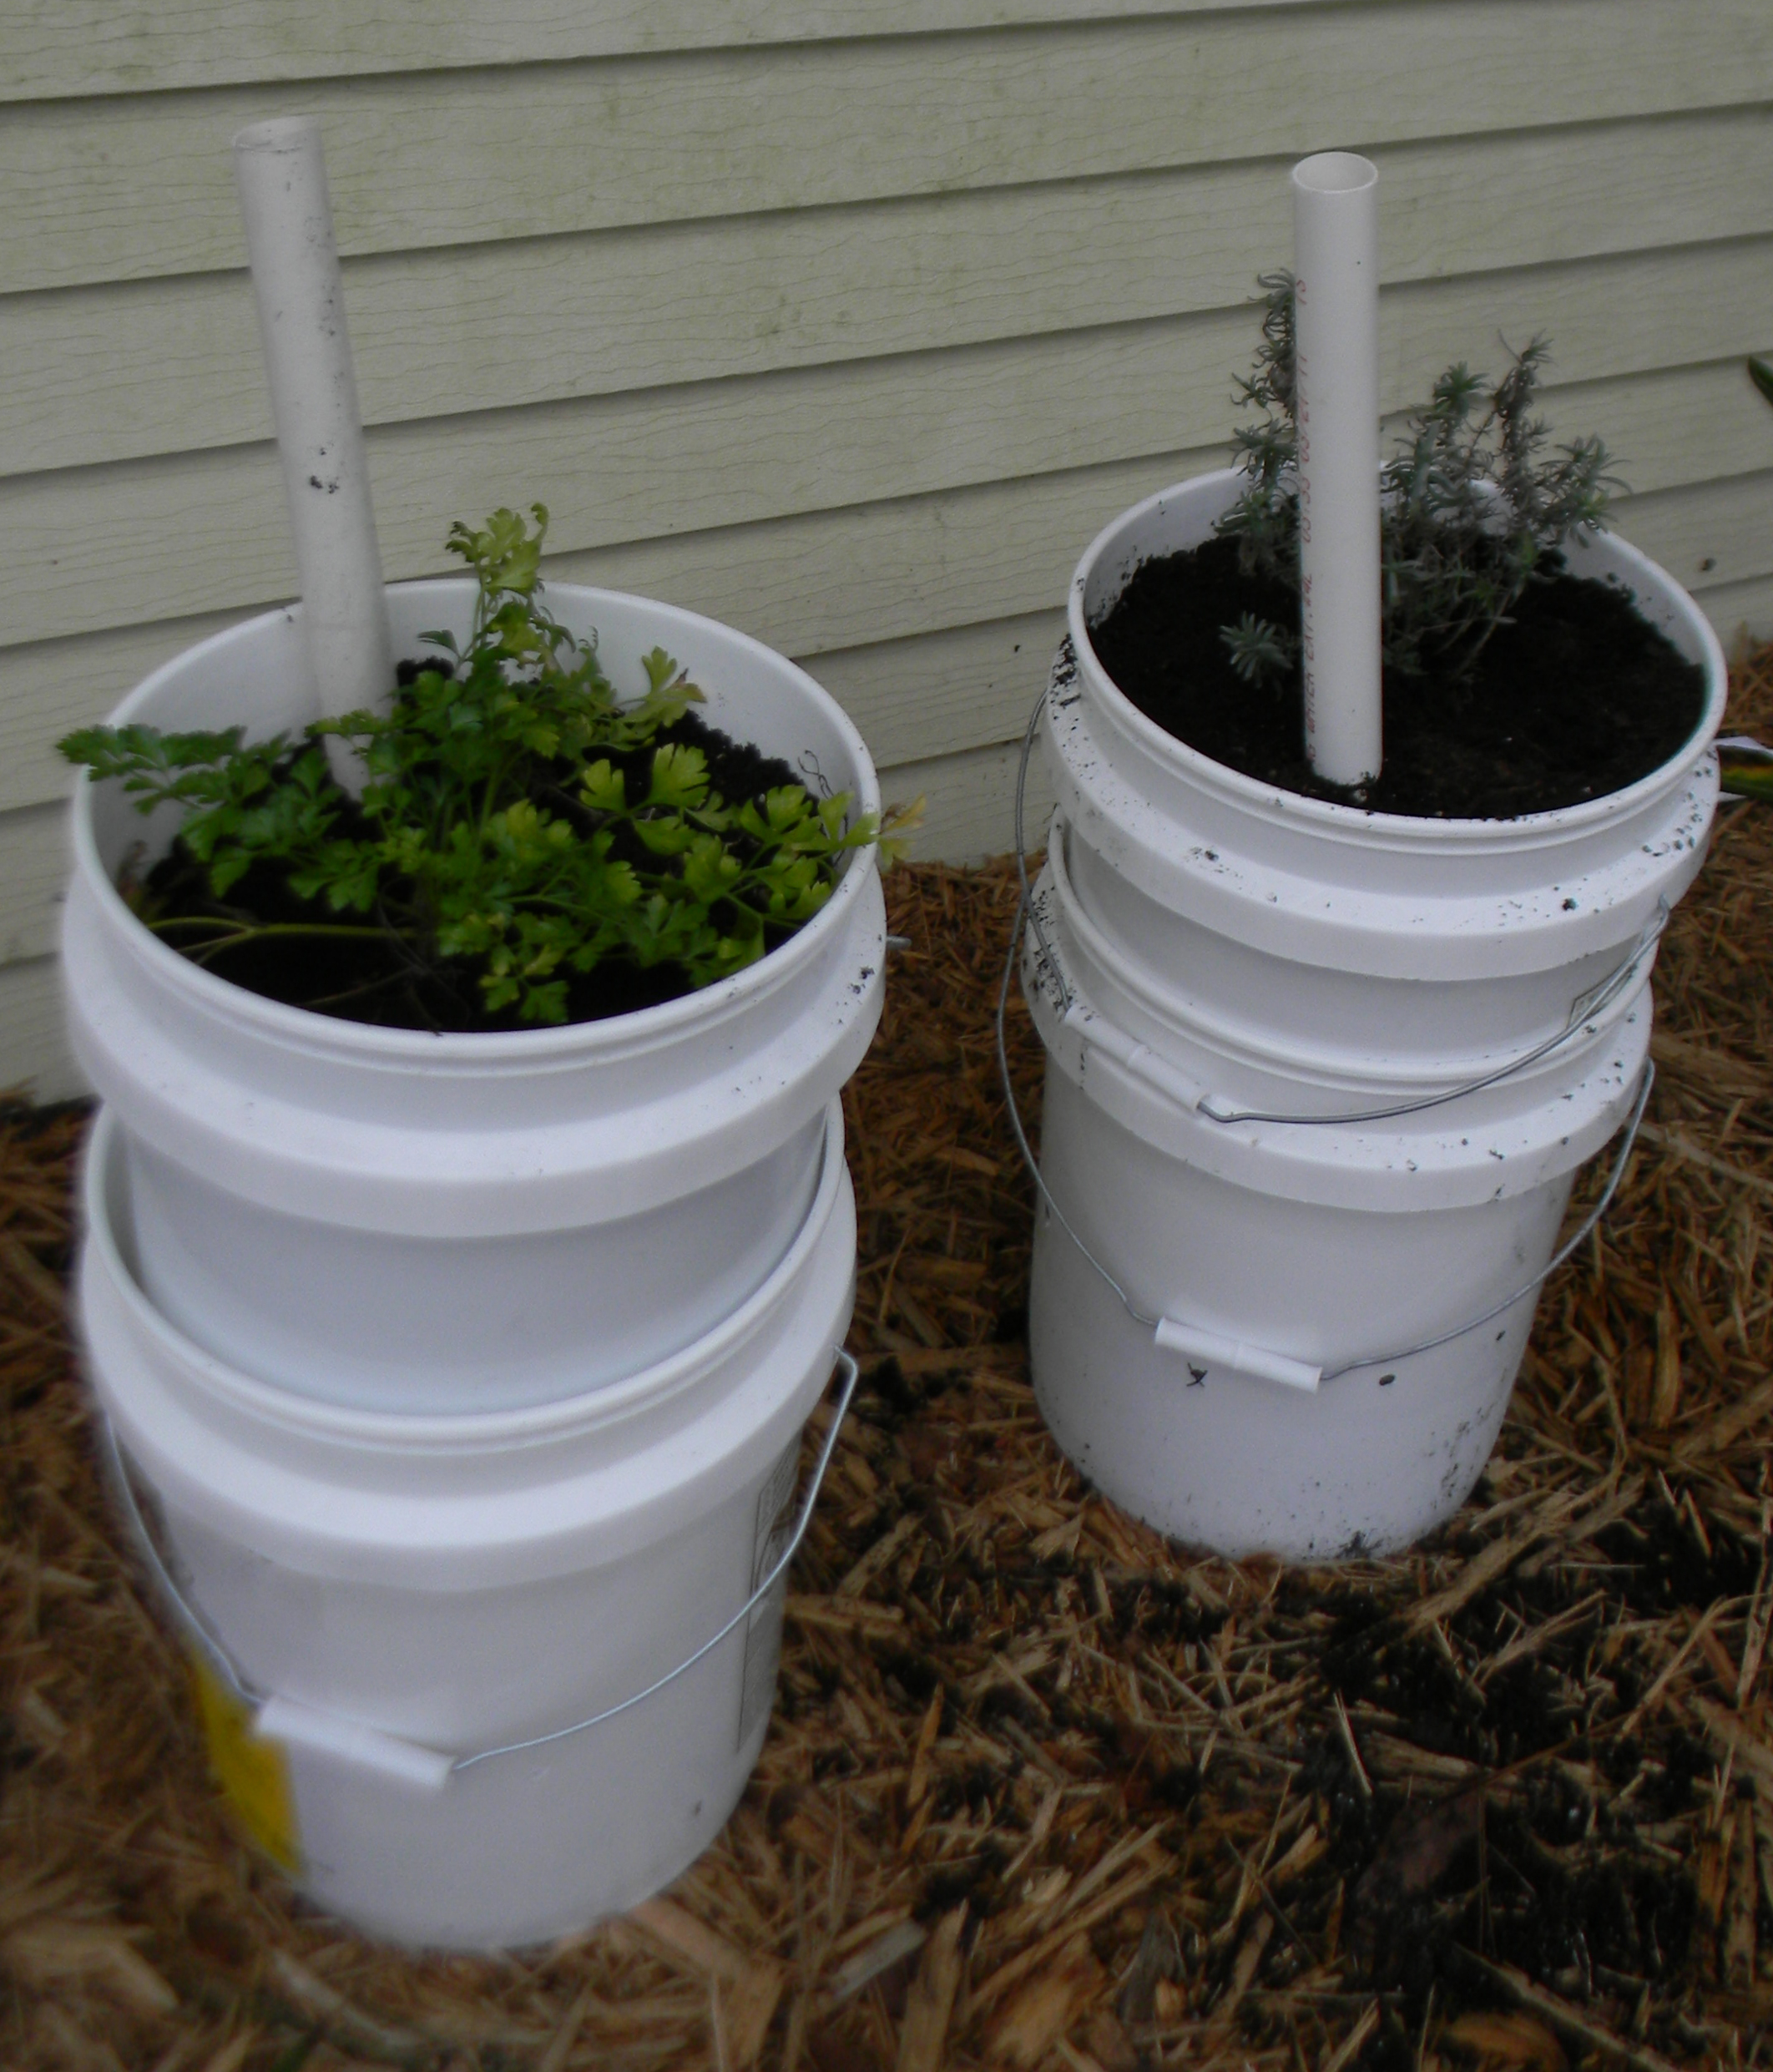 Self Watering Garden Containers 5 Gallon Buckets Upated 82015